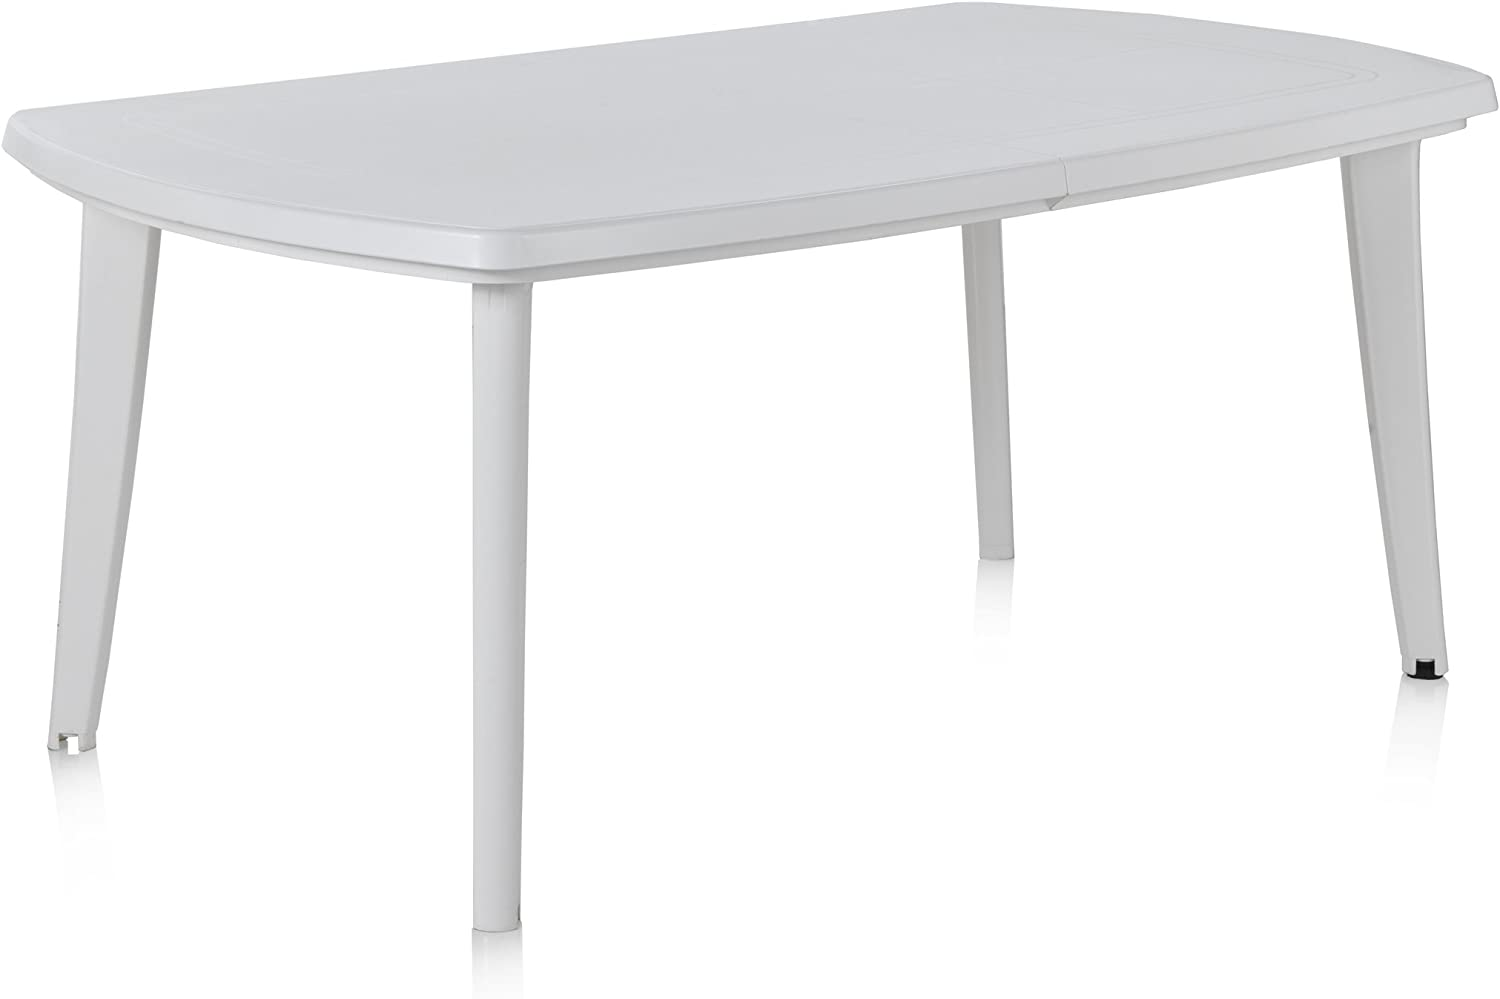 Shaf Atlantic - Mesa extensible, Blanco, 225 x 100 x 73 cm